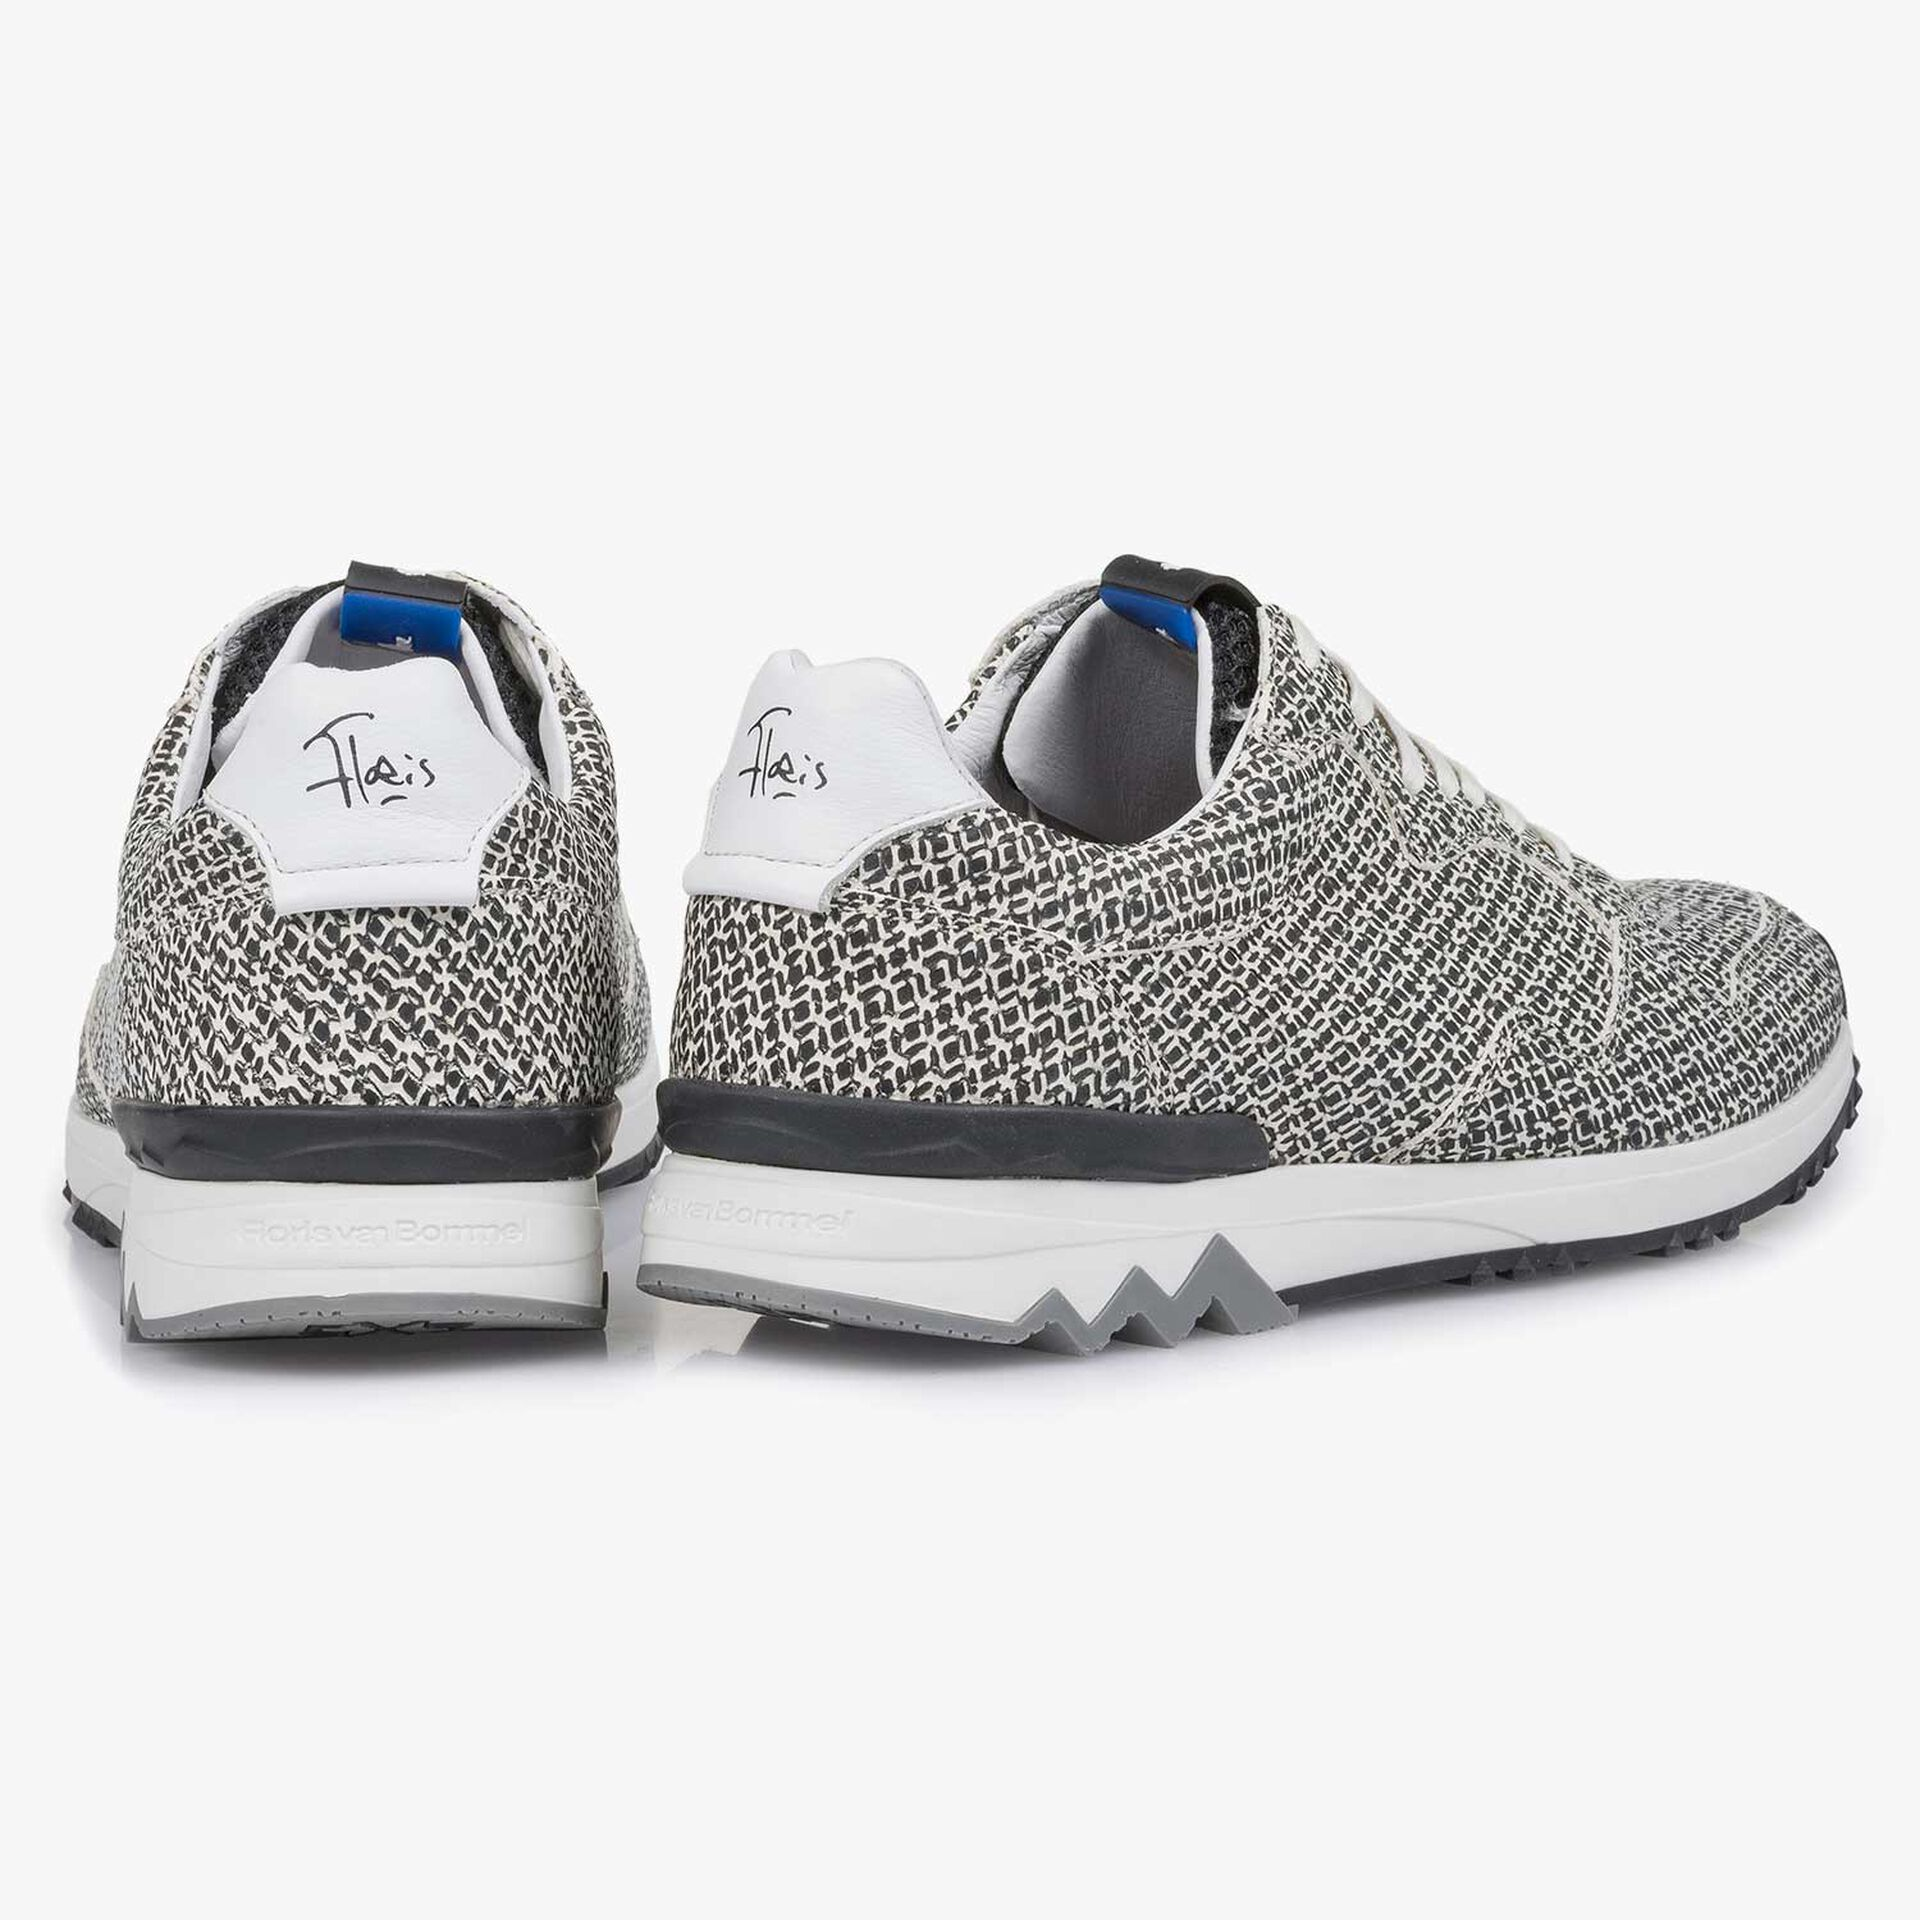 White leather sneaker with a geometric print